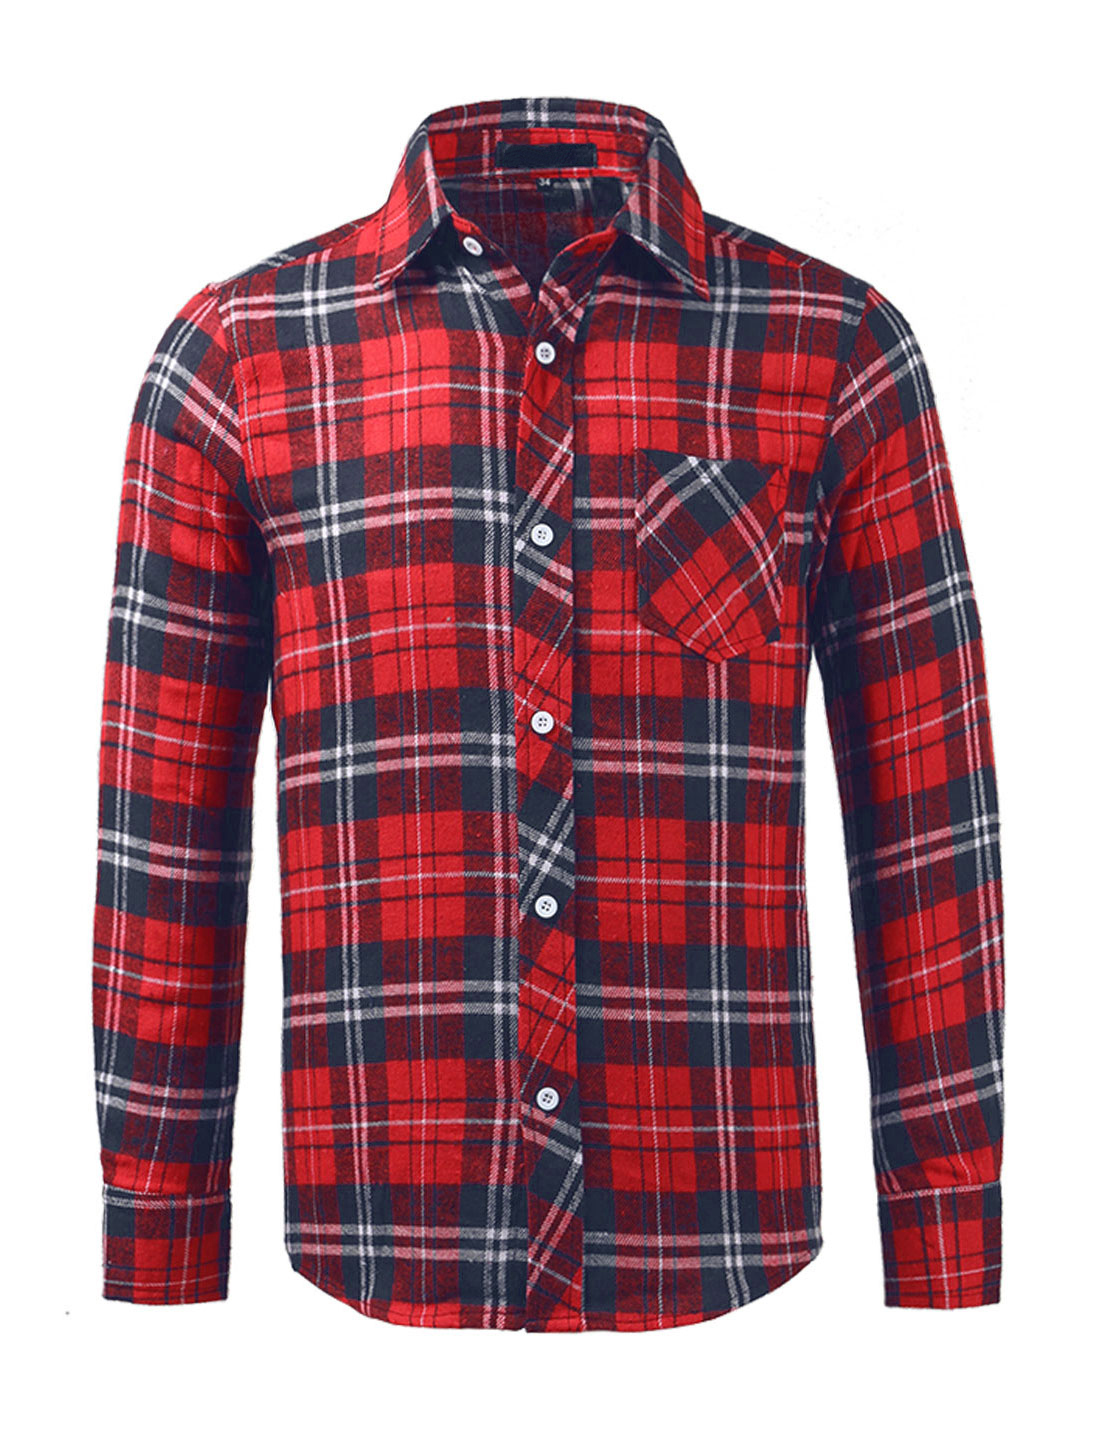 Man Single Breasted Round Hem Chest Pocket Check Print Shirt Red-Blue M